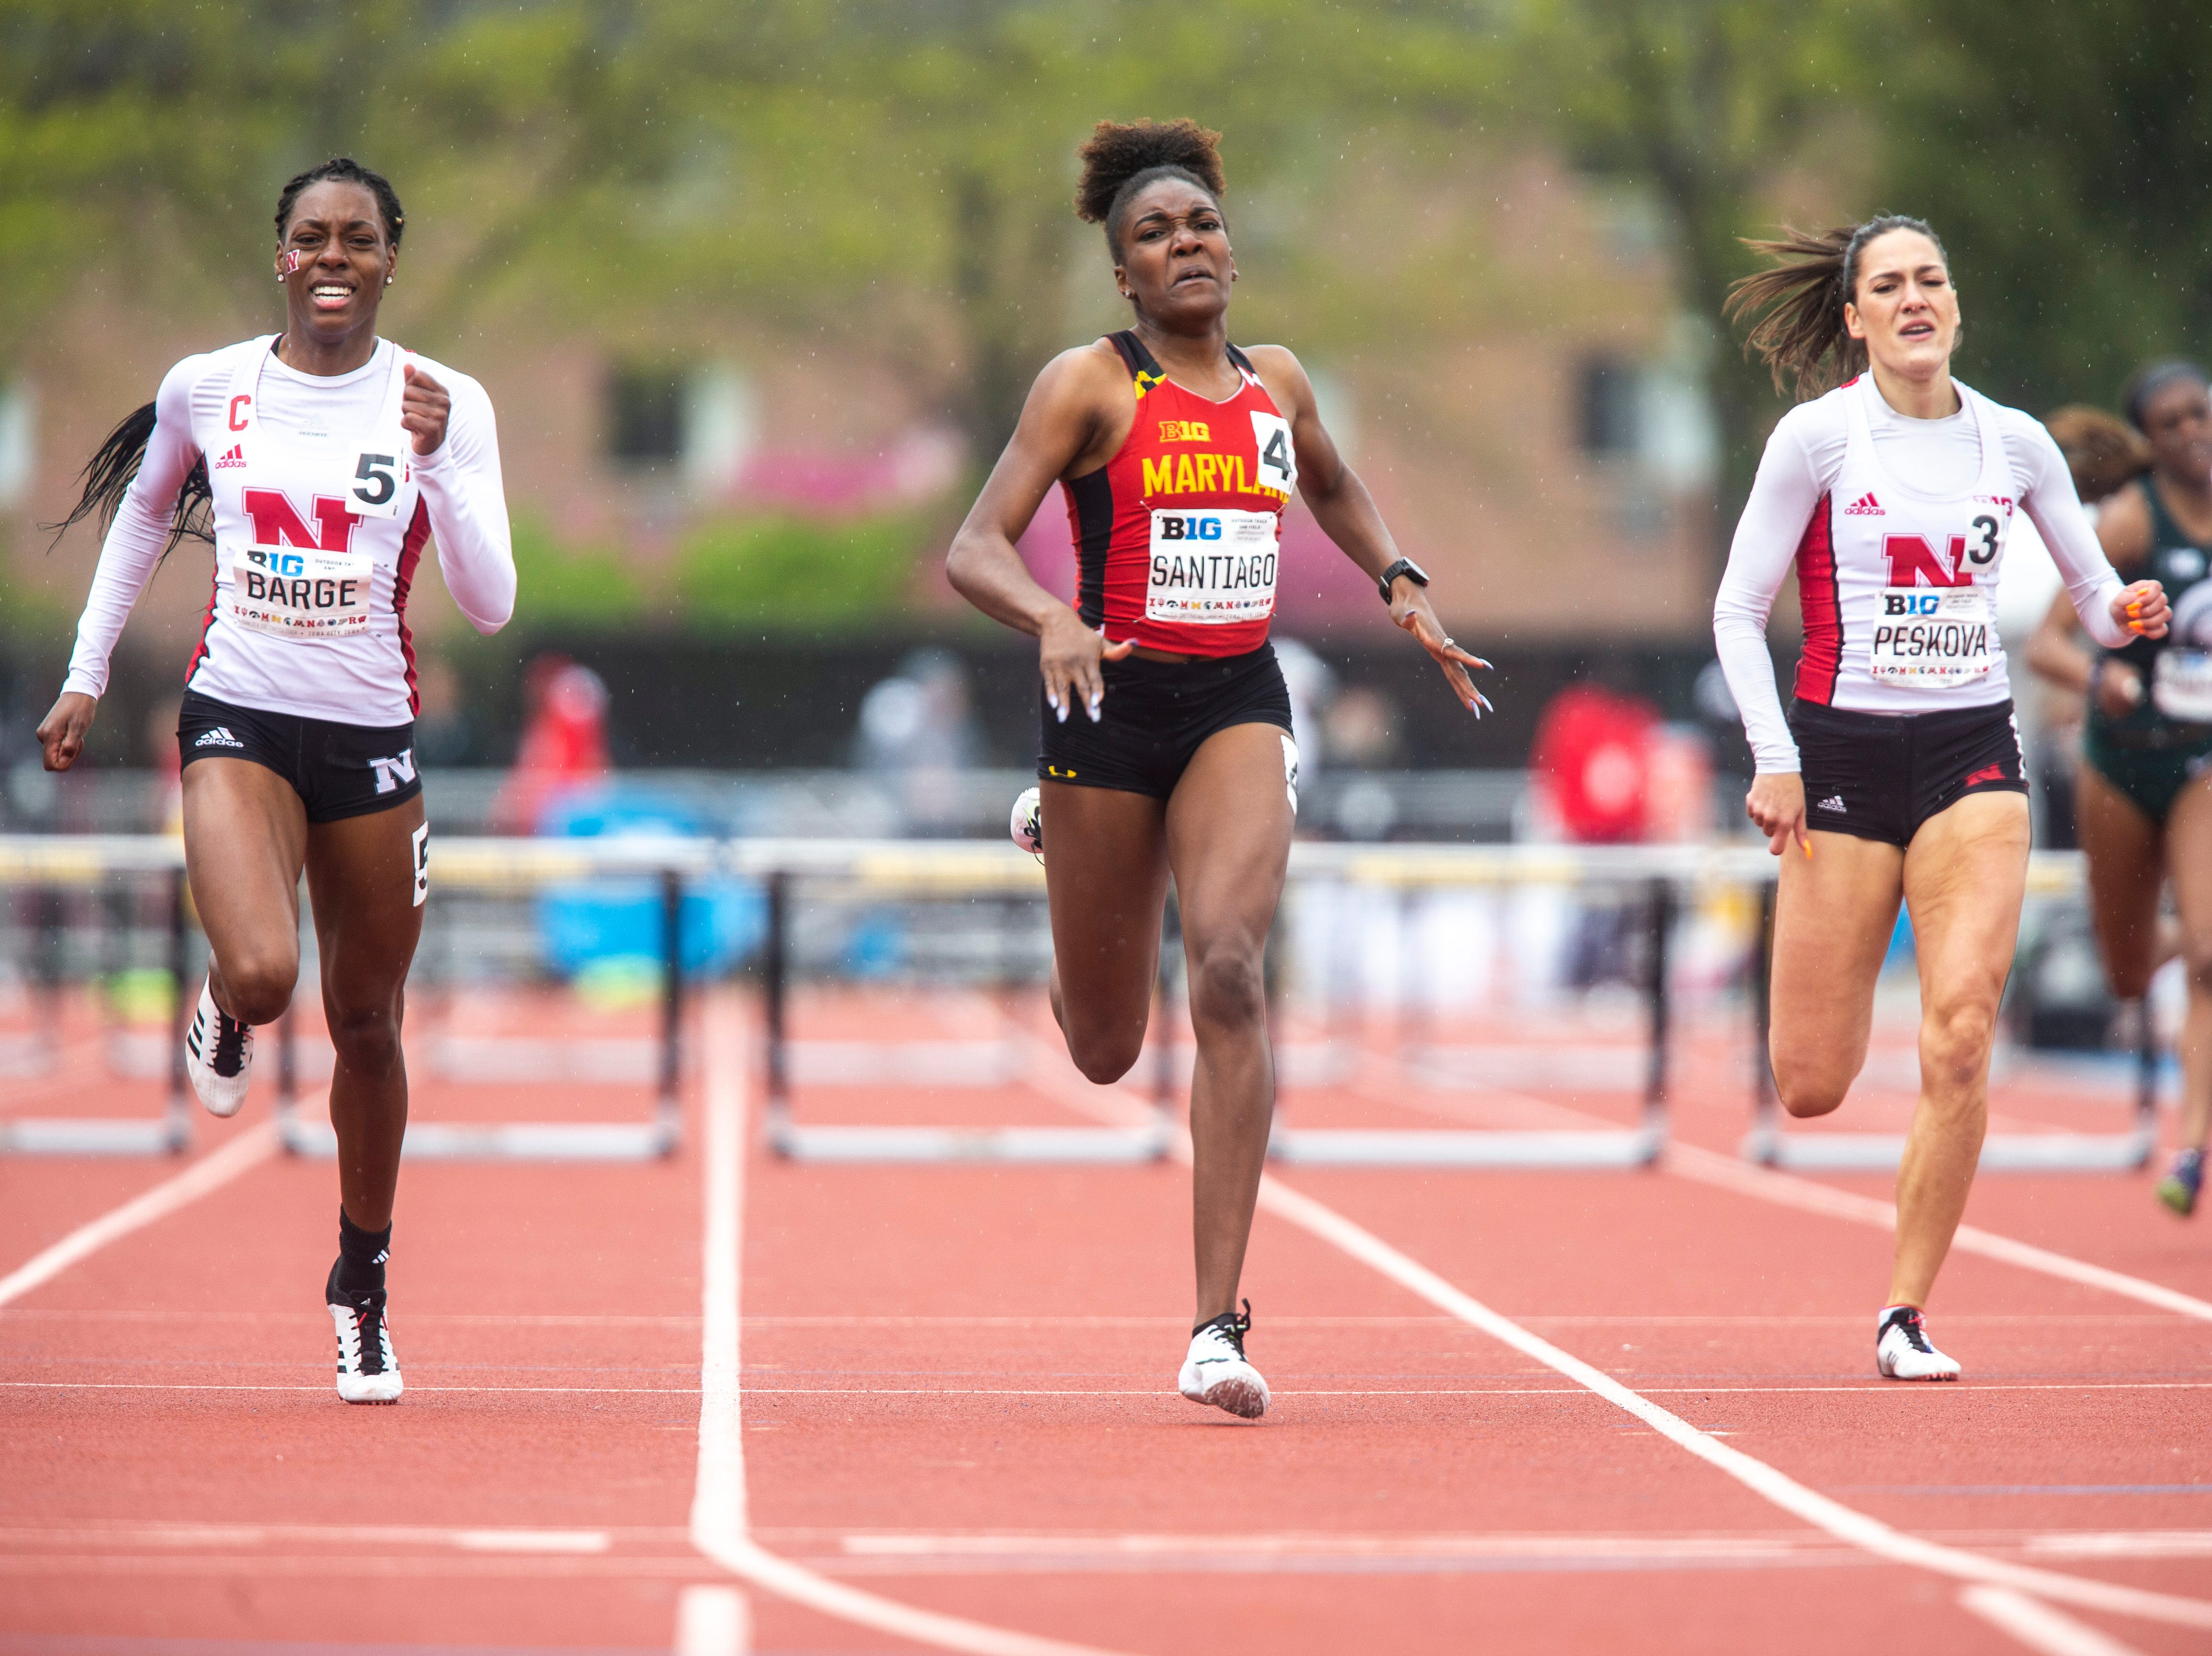 Maryland sophomore Xahria Santiago (4) runs towards the finish line while competing in 400 meter hurdles during the final day of Big Ten track and field outdoor championships, Sunday, May 12, 2019, at Francis X. Cretzmeyer Track on the University of Iowa campus in Iowa City, Iowa. Nebraska's Jasmine Barge, left, and Nebraska's Michaela Peskova, right.